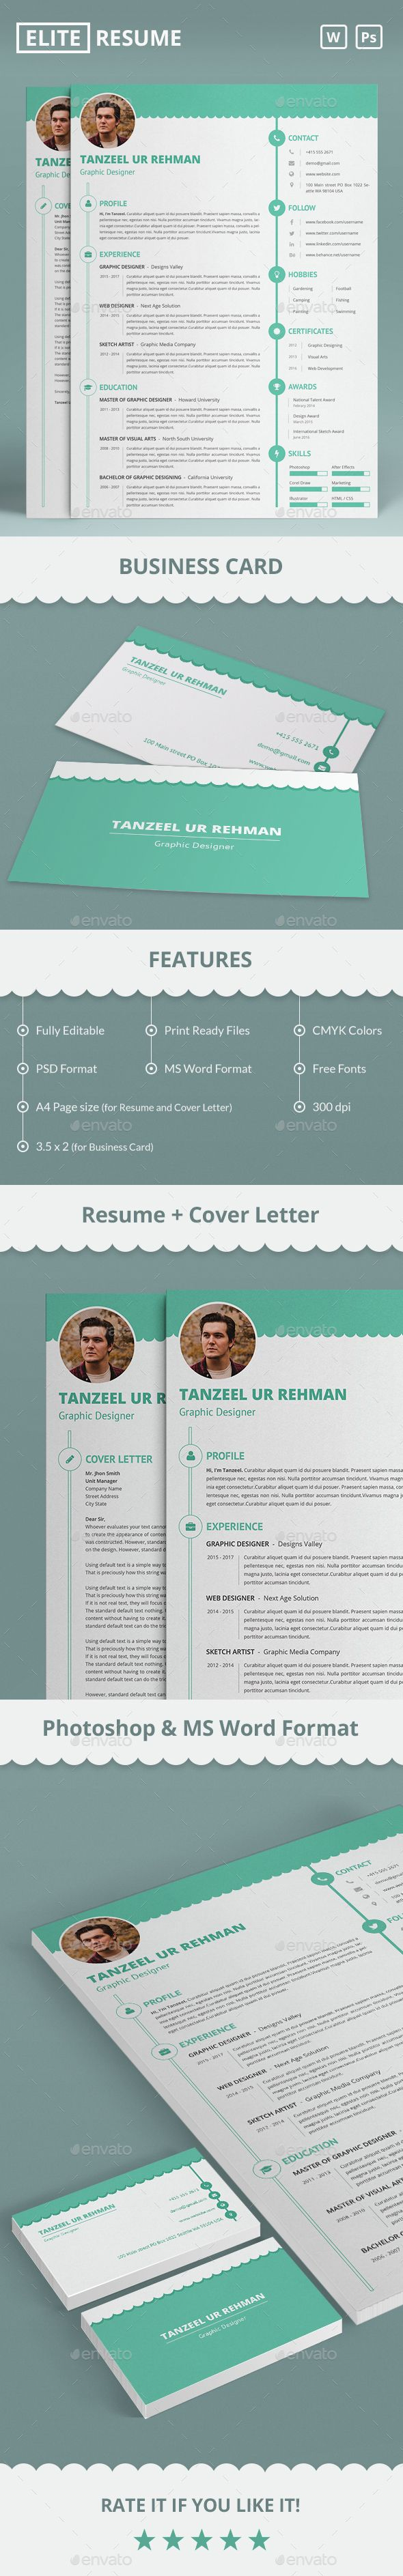 elite resume business card business cards template and microsoft